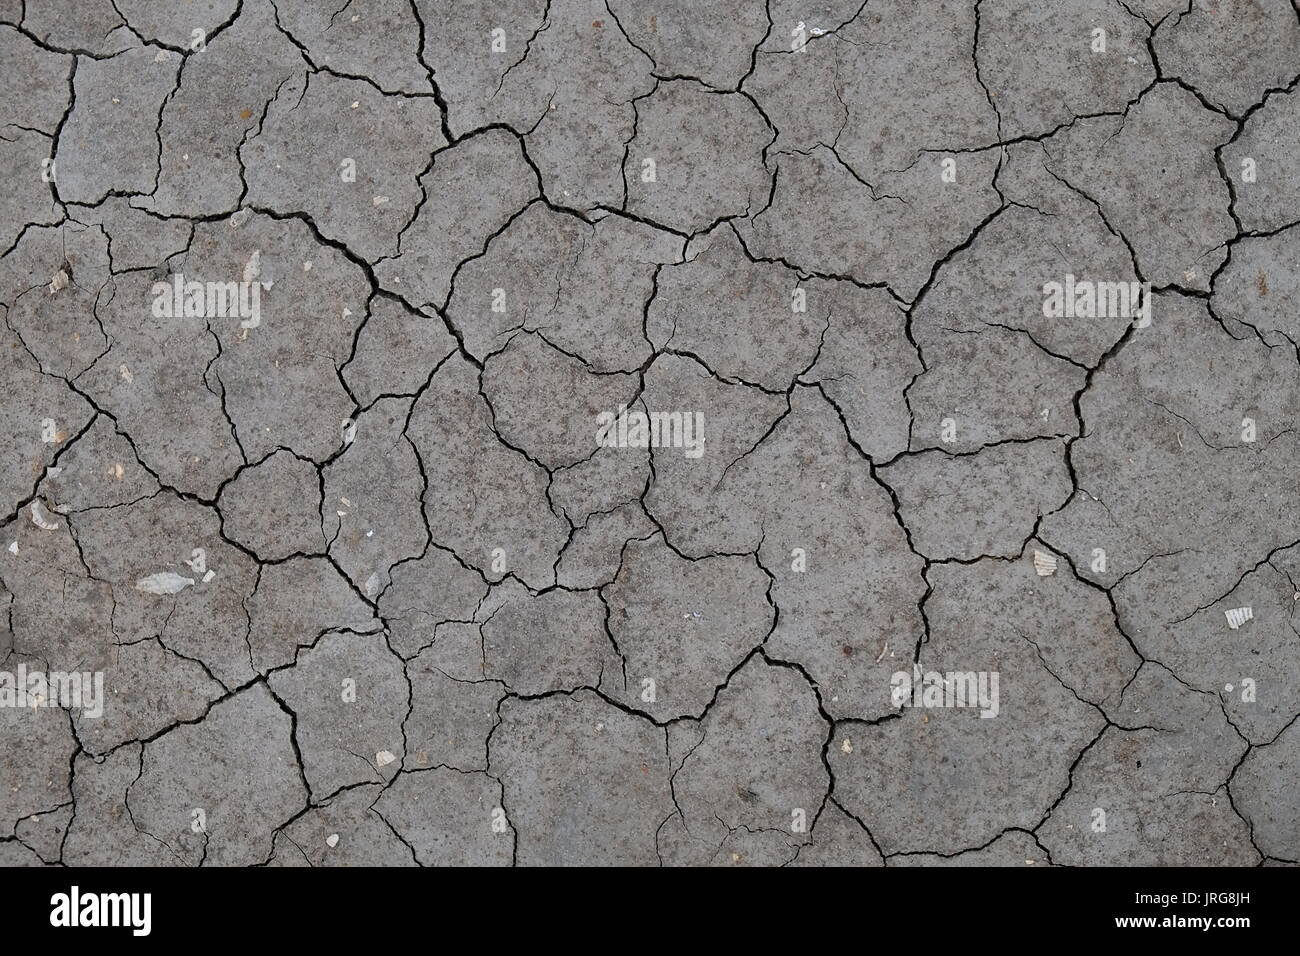 Cracked soil from a dried river bed. Weather and climate change Stock Photo